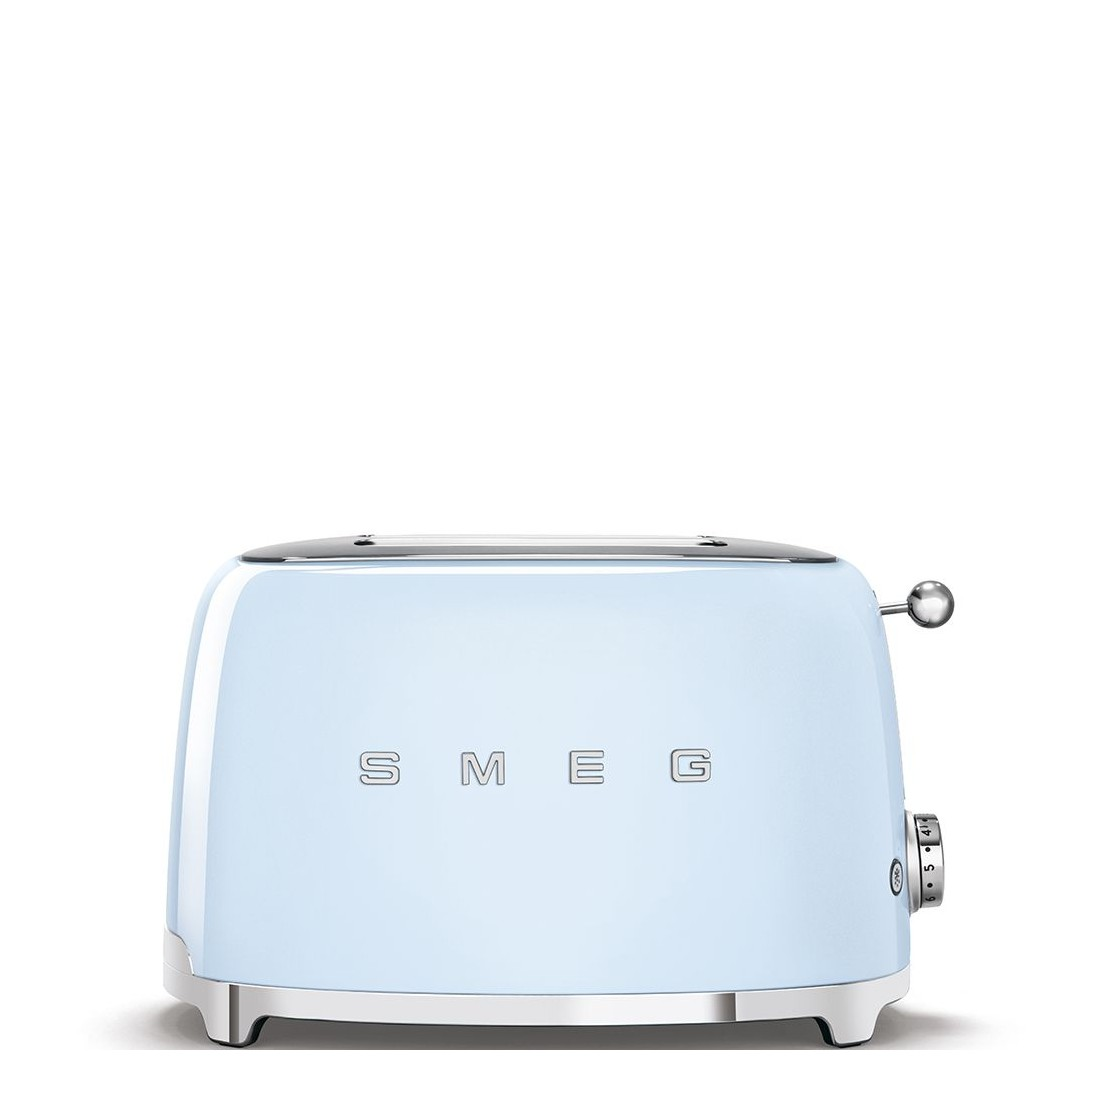 Toasters 2 tranches Années 50 - Smeg